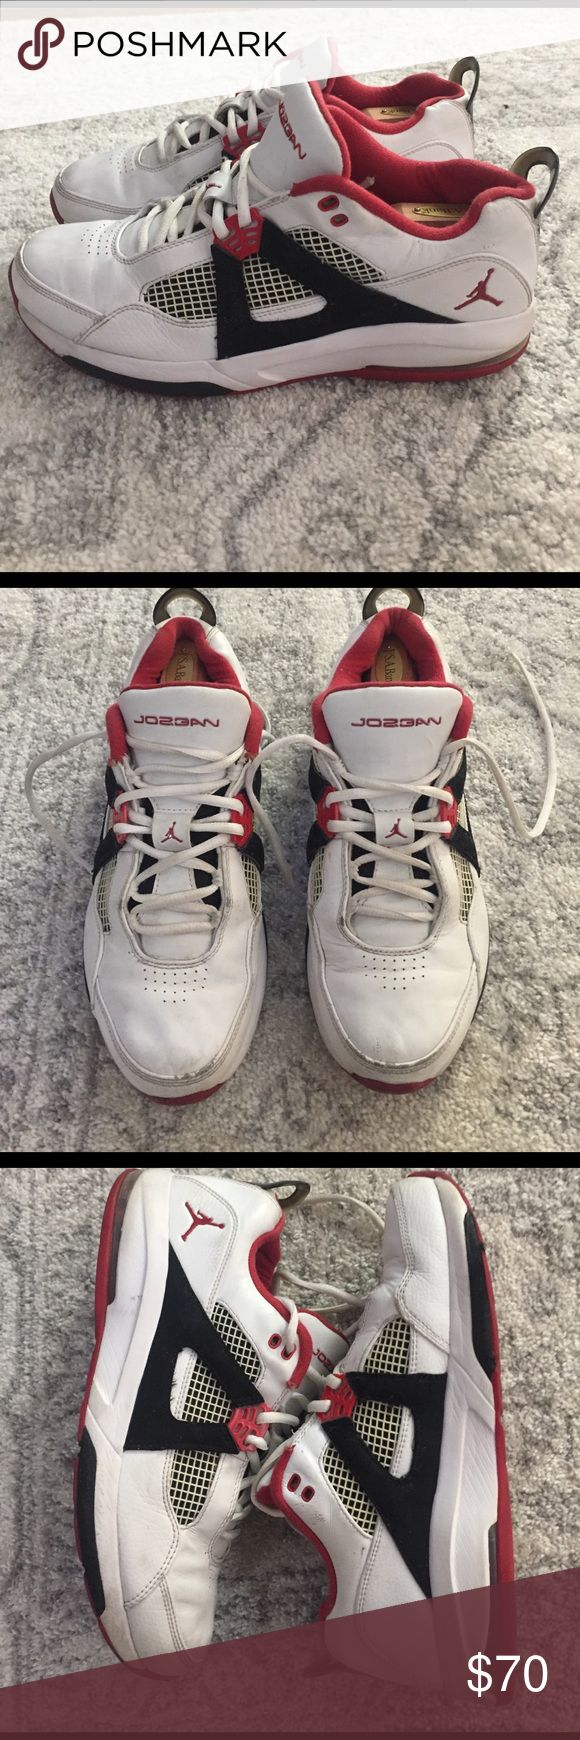 Jordan low top shoes 100% authentic - in good shape and very comfortable. Can be worn for basketball or just casual sneaker Jordan Shoes Sneakers